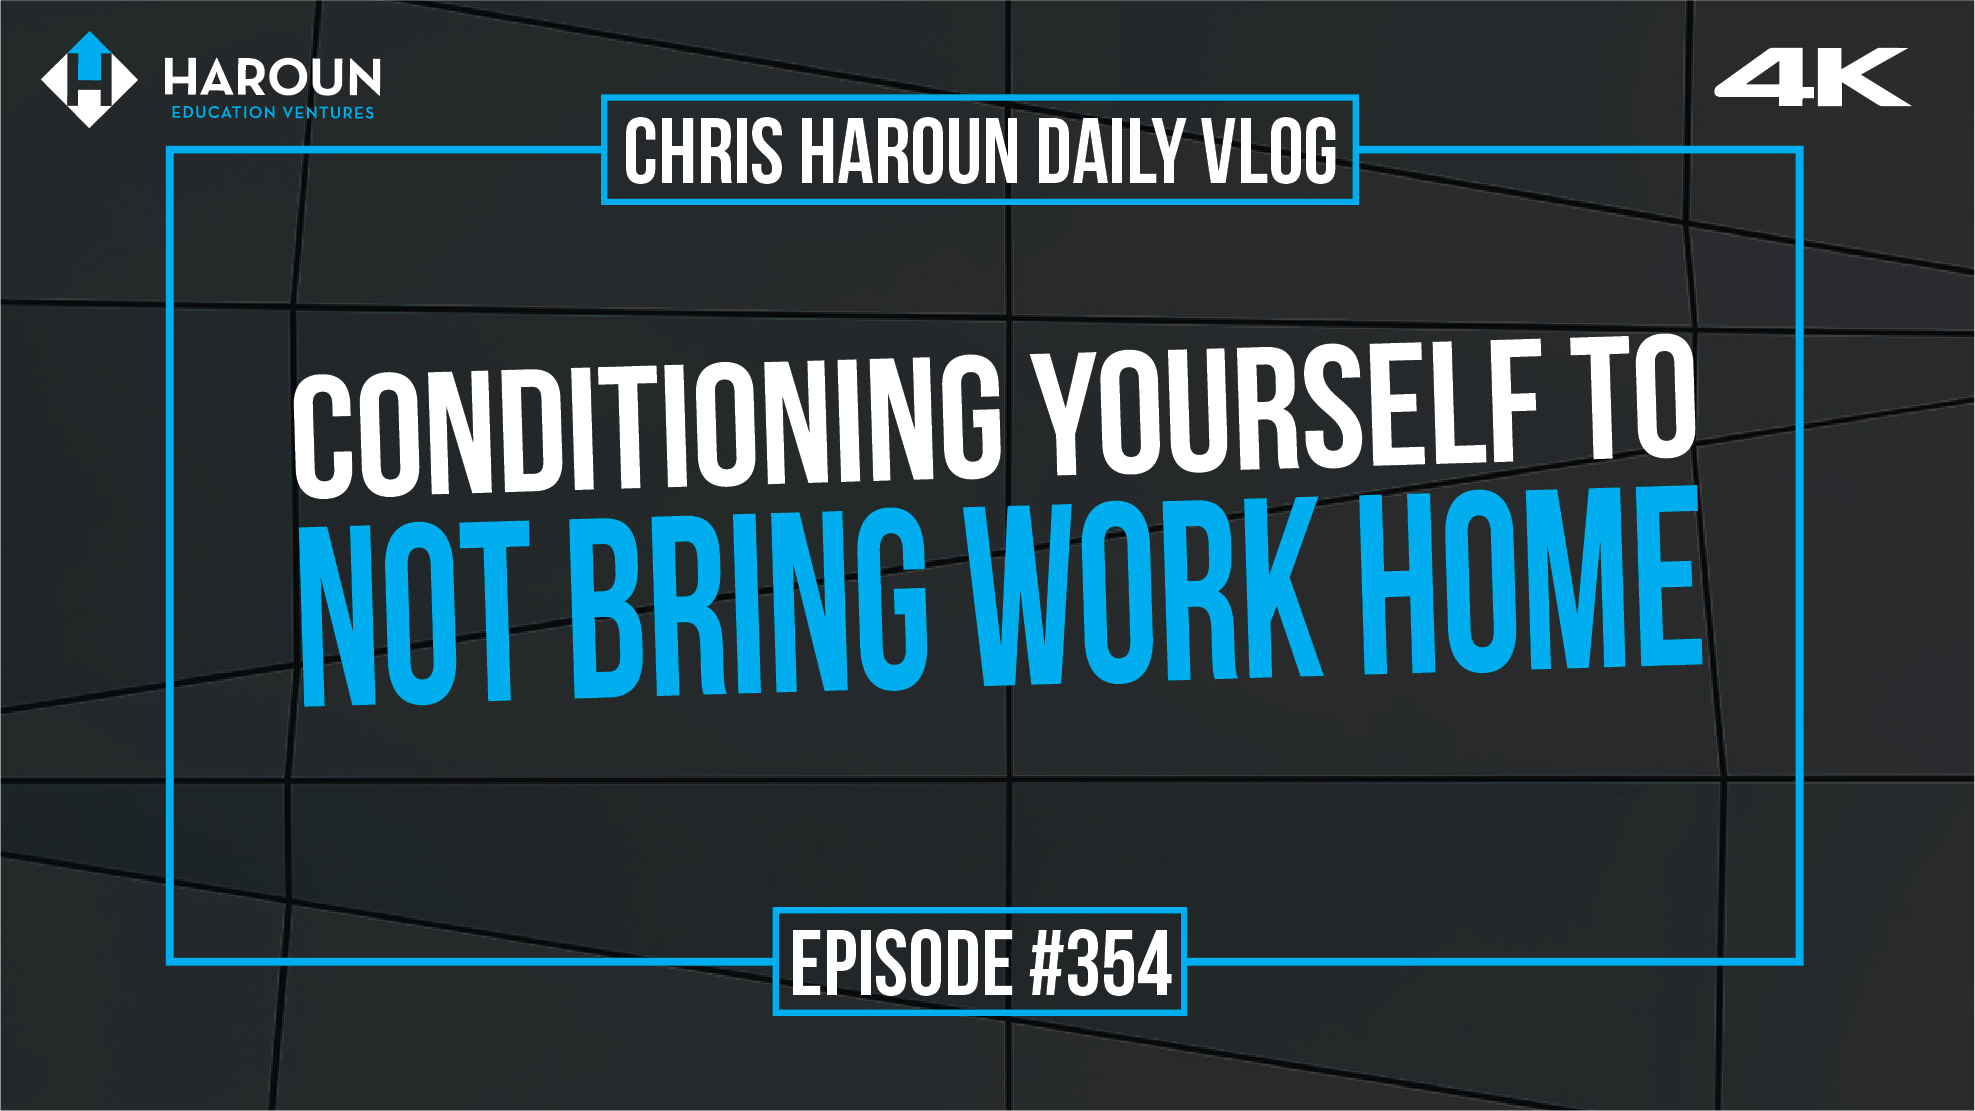 VLOG_354_7_20_2019_Conditioning Yourself to Not Bring Work Home.png